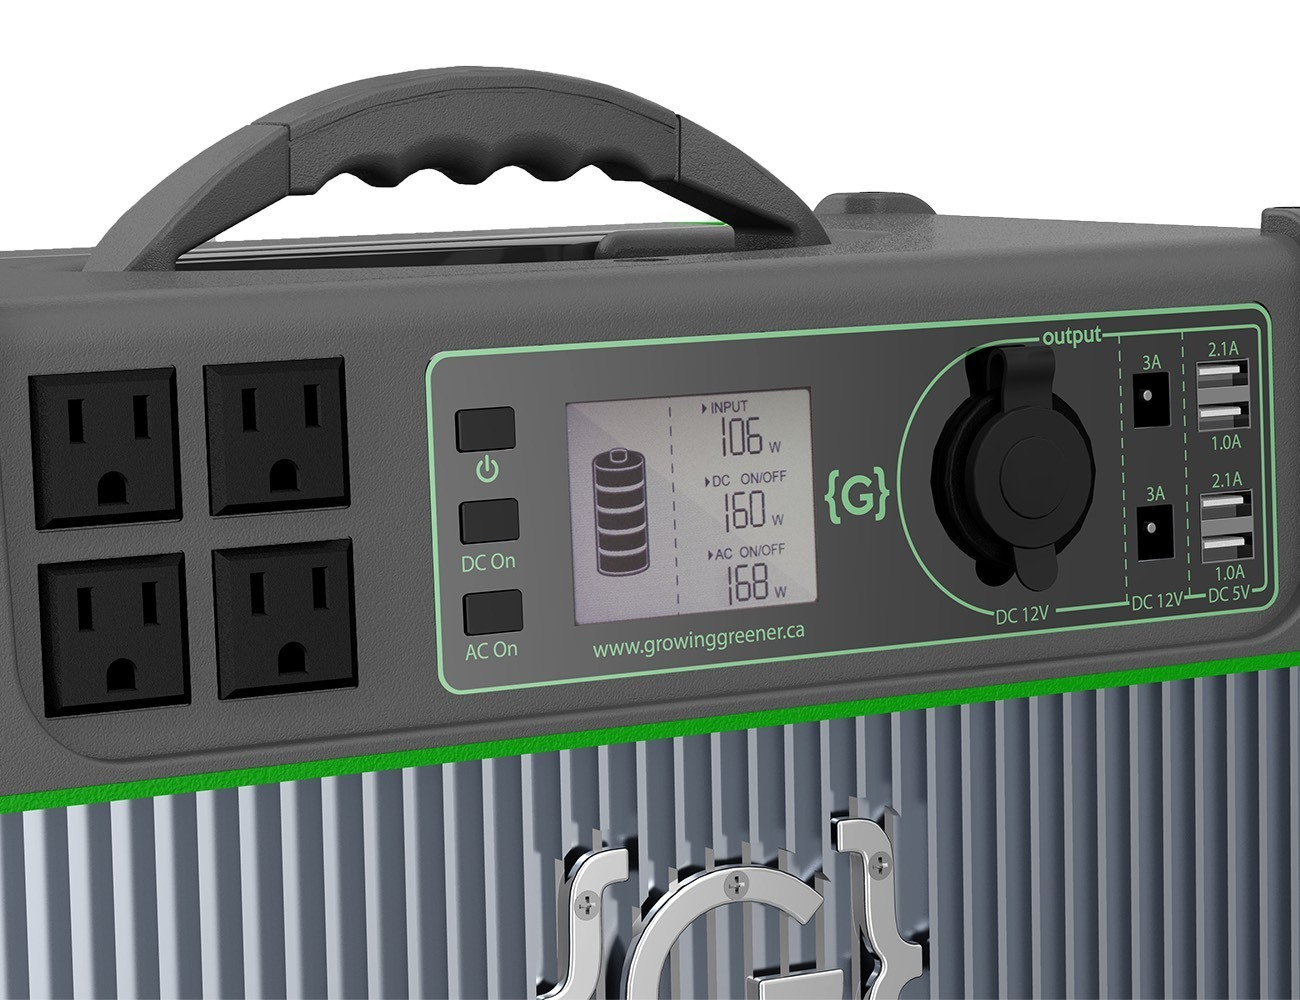 GRENGINE 1000 Eco-Friendly Portable Generator